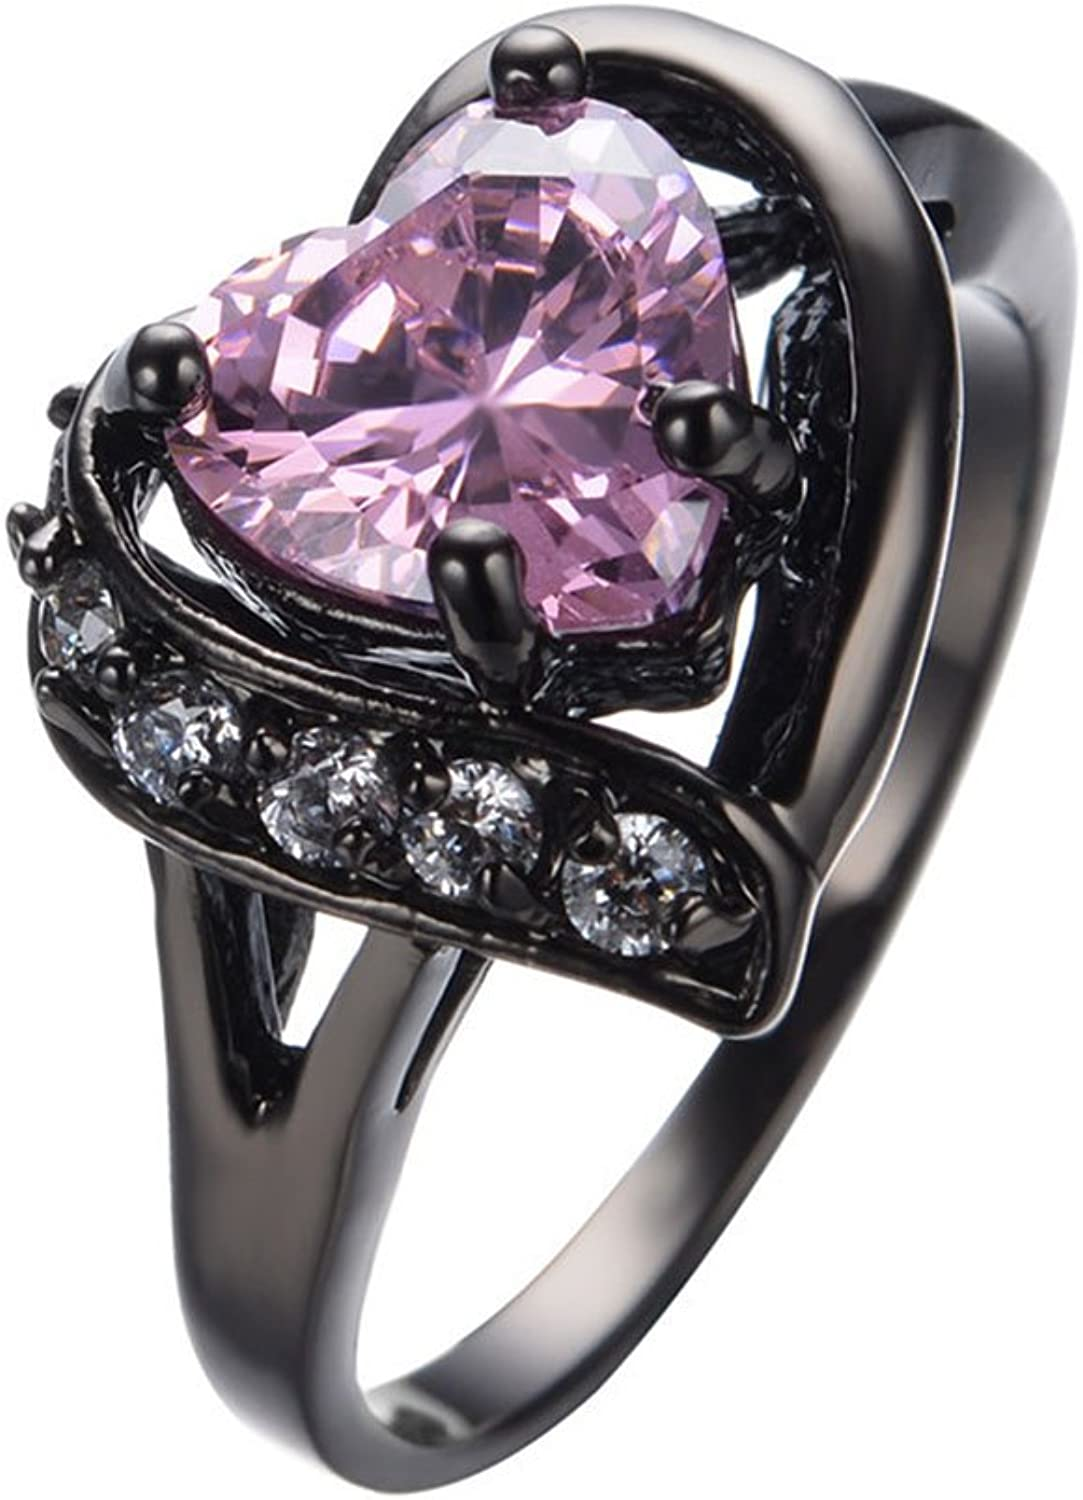 LUXXY Big Heart Bridal Trendy Black gold Filled Cubic Zircon Stone Ring